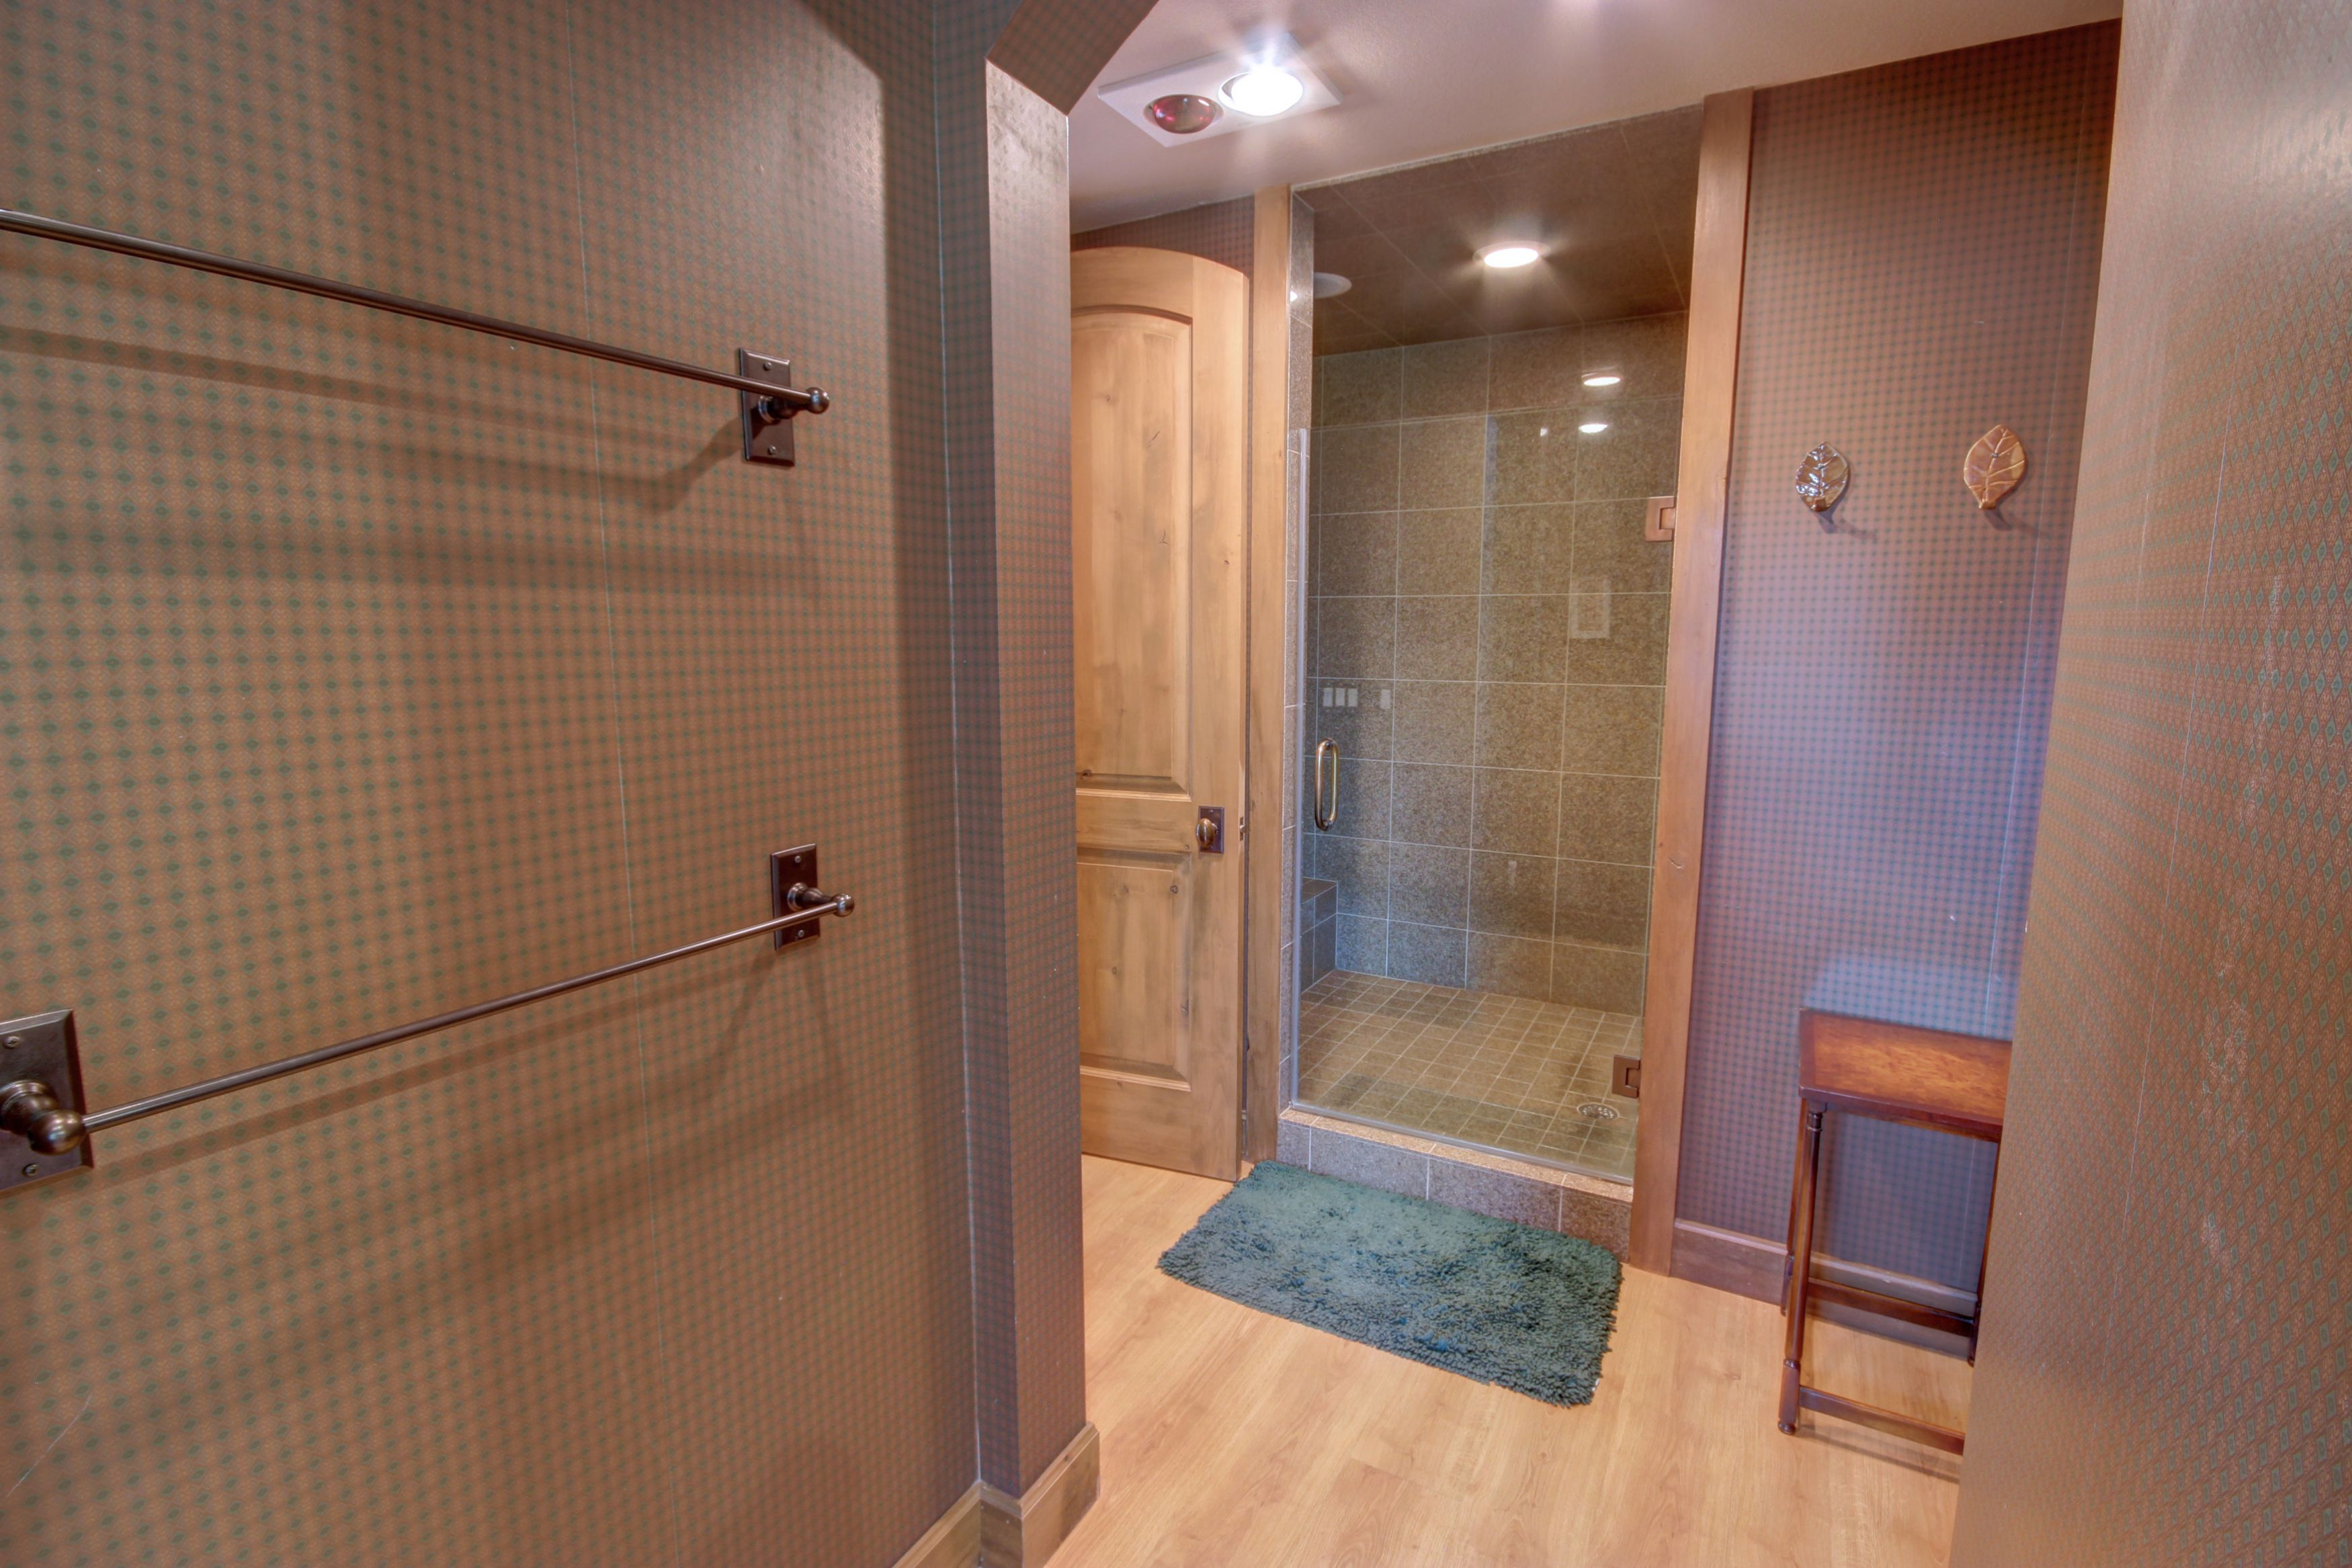 Bathroom with lots of space and colors